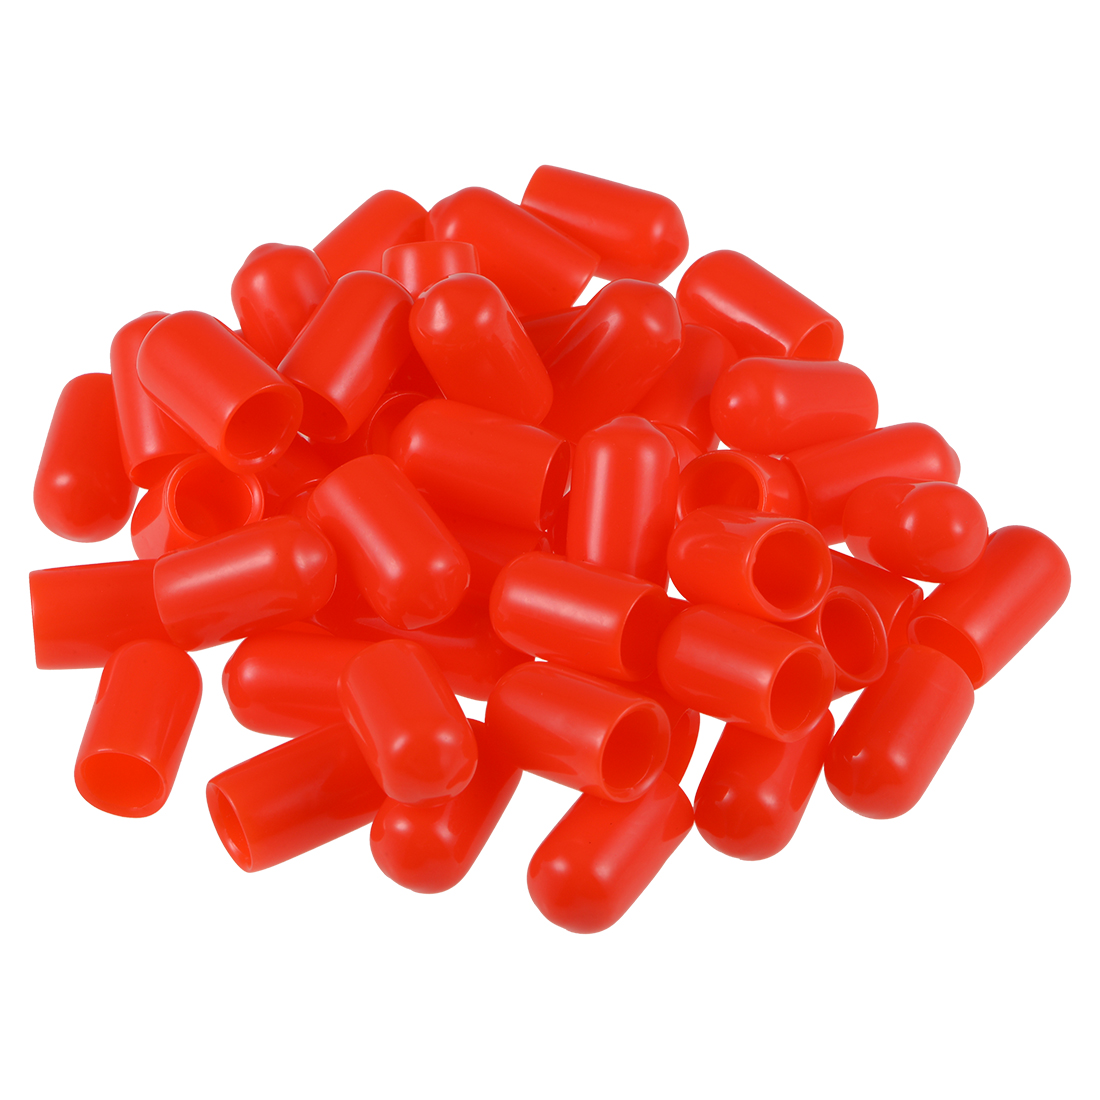 Screw Thread Protectors, 7mm ID 15mm Length Round End Cap Cover Red 50pcs